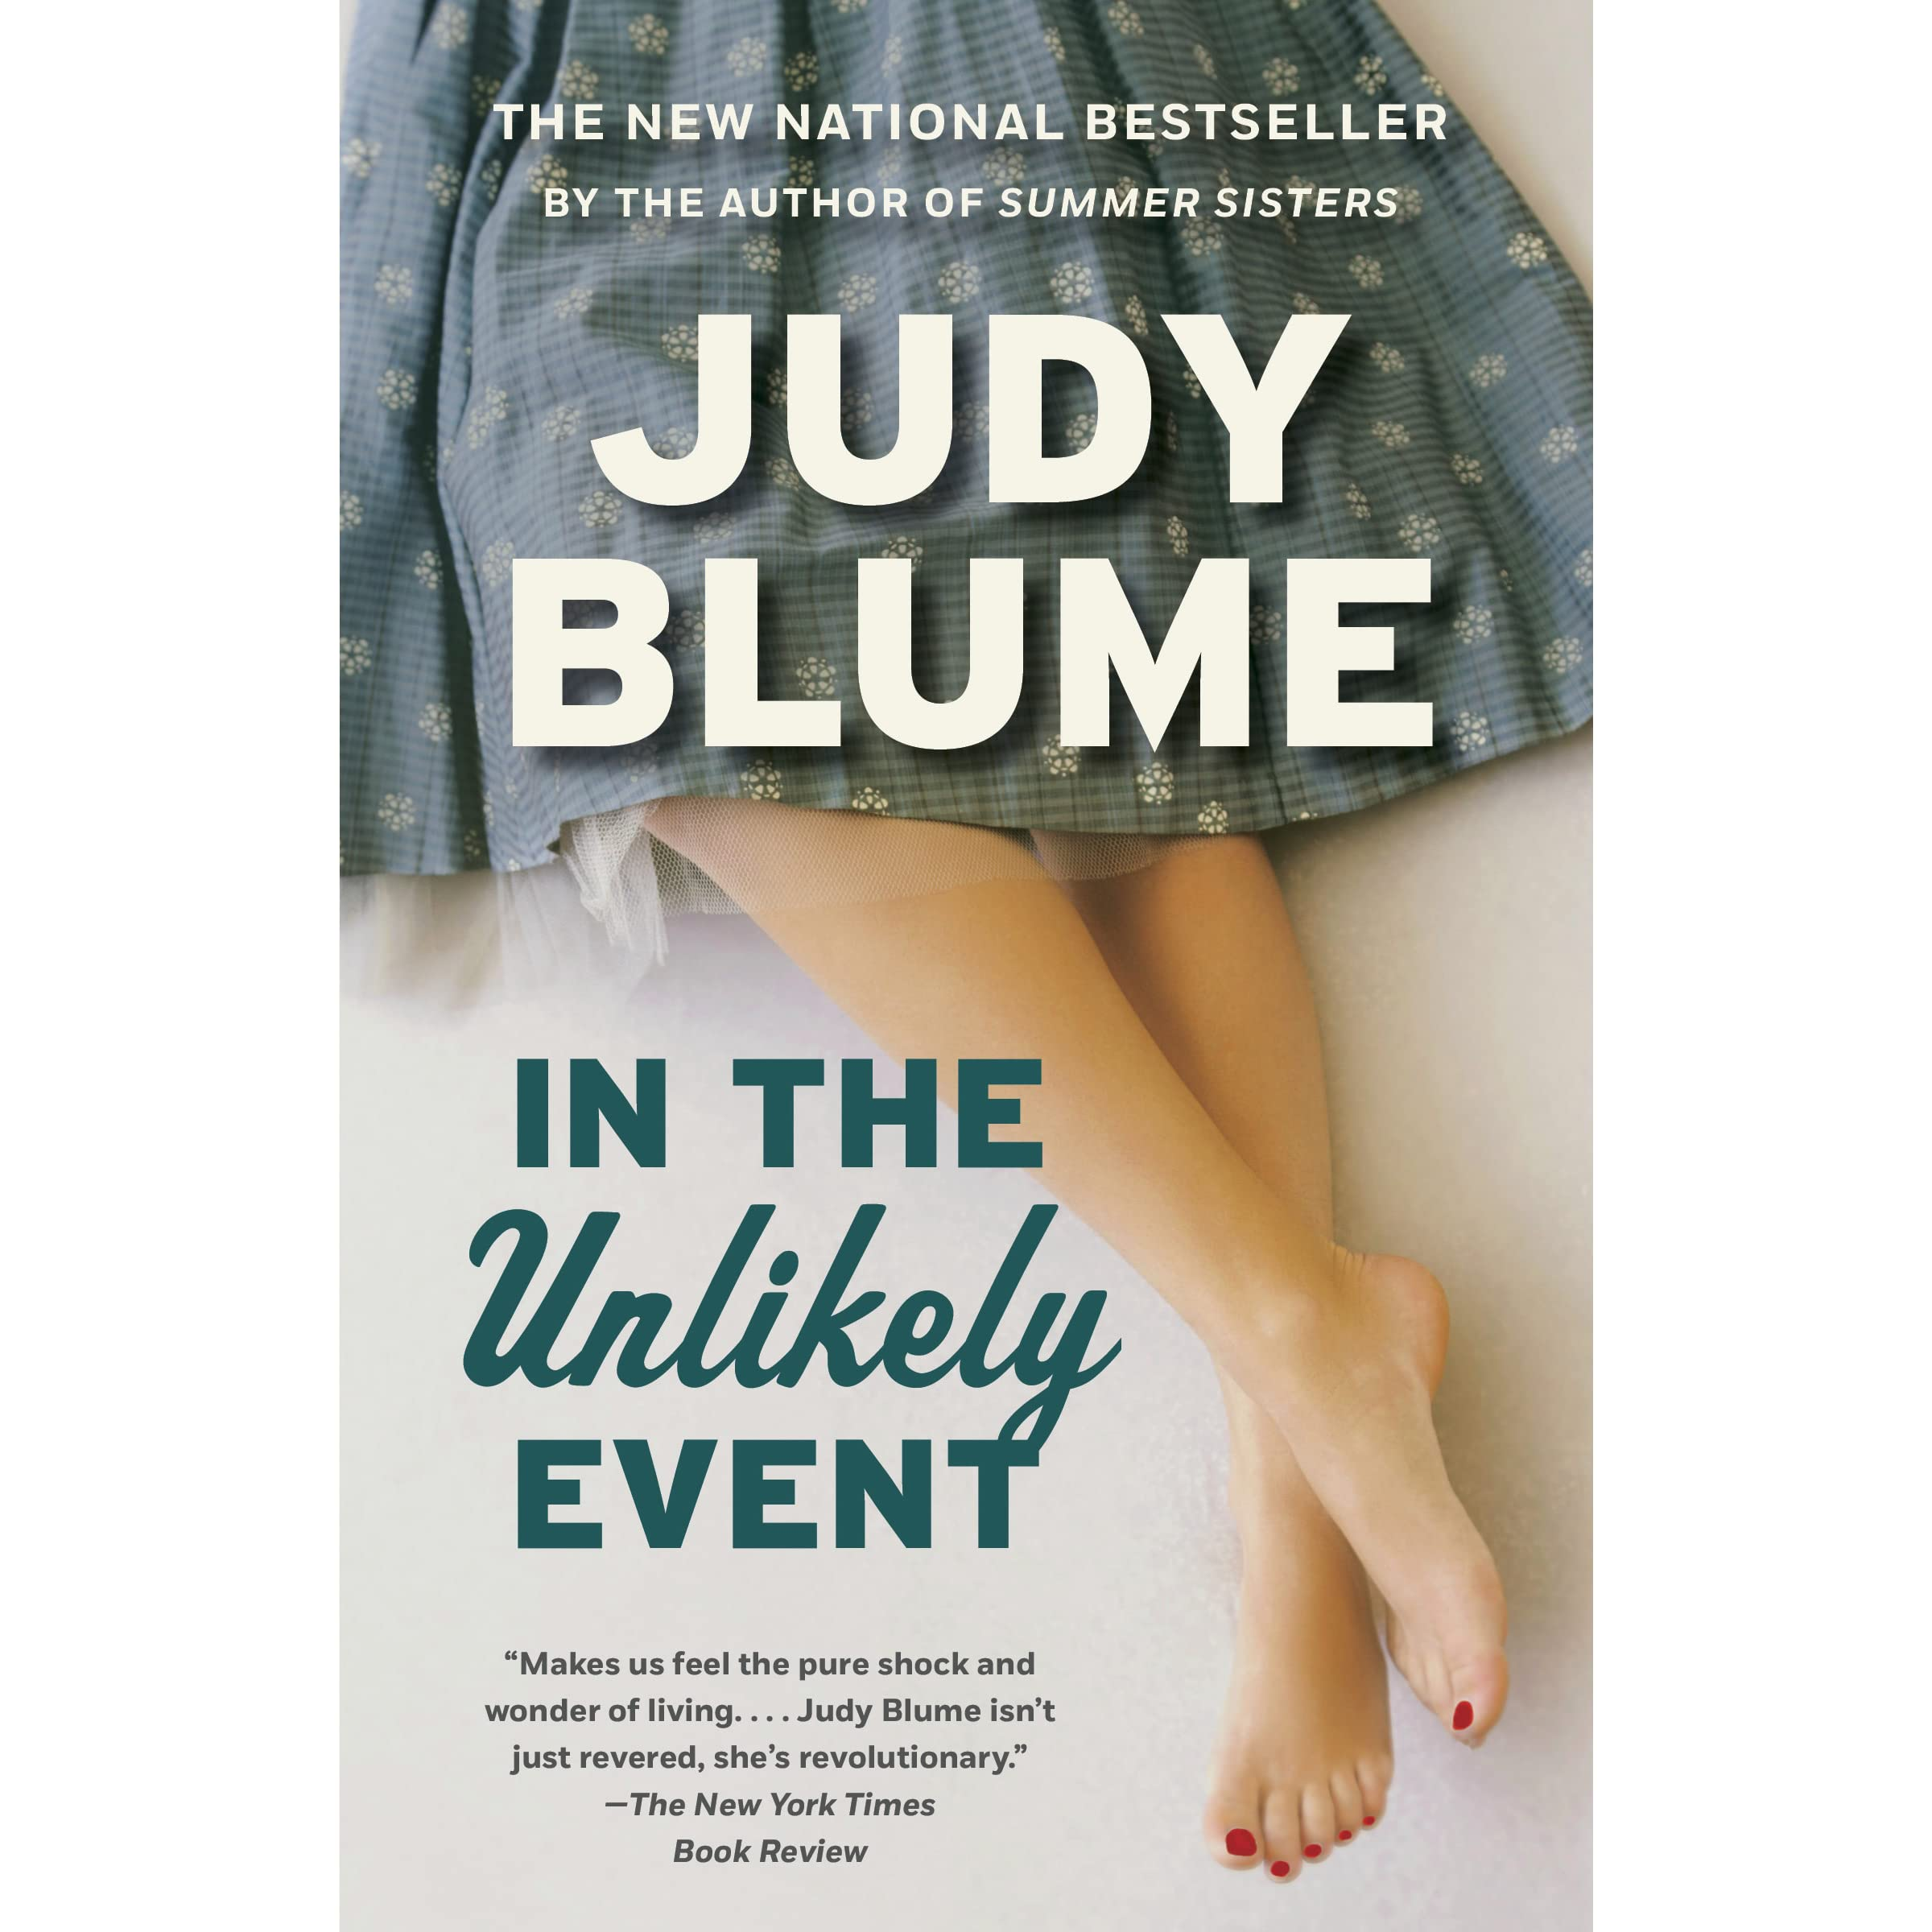 a literary analysis of summer sisters by judy blume